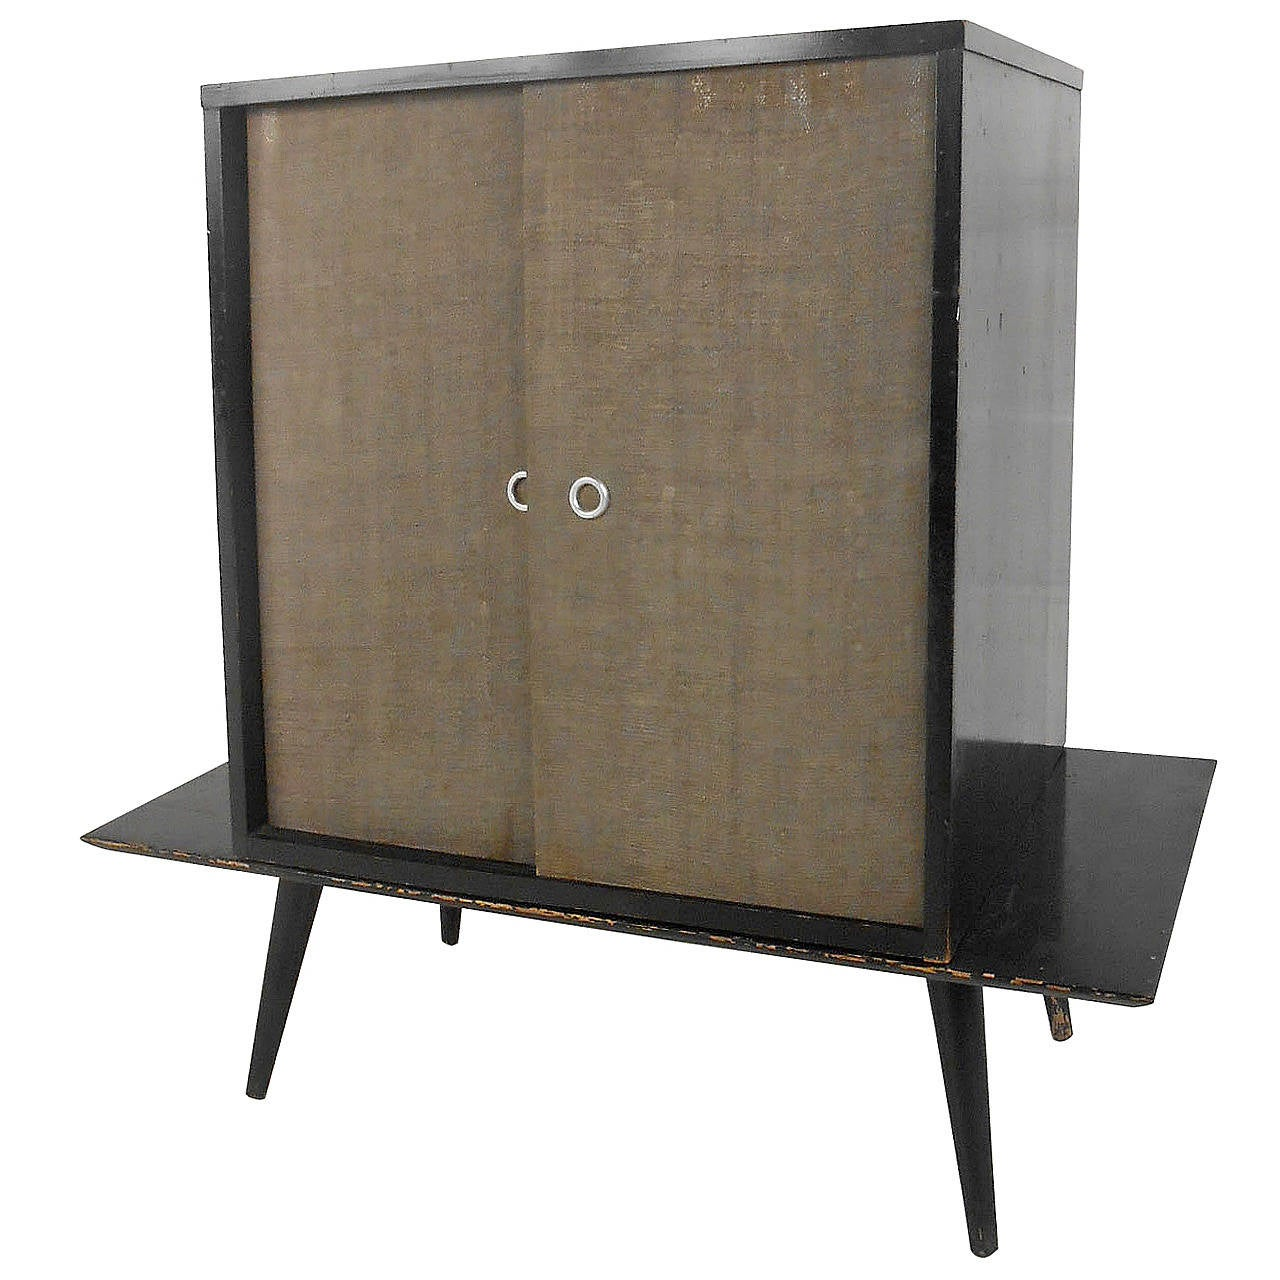 Mid century modern paul mccobb table top cabinet at 1stdibs for Best mid priced kitchen cabinets